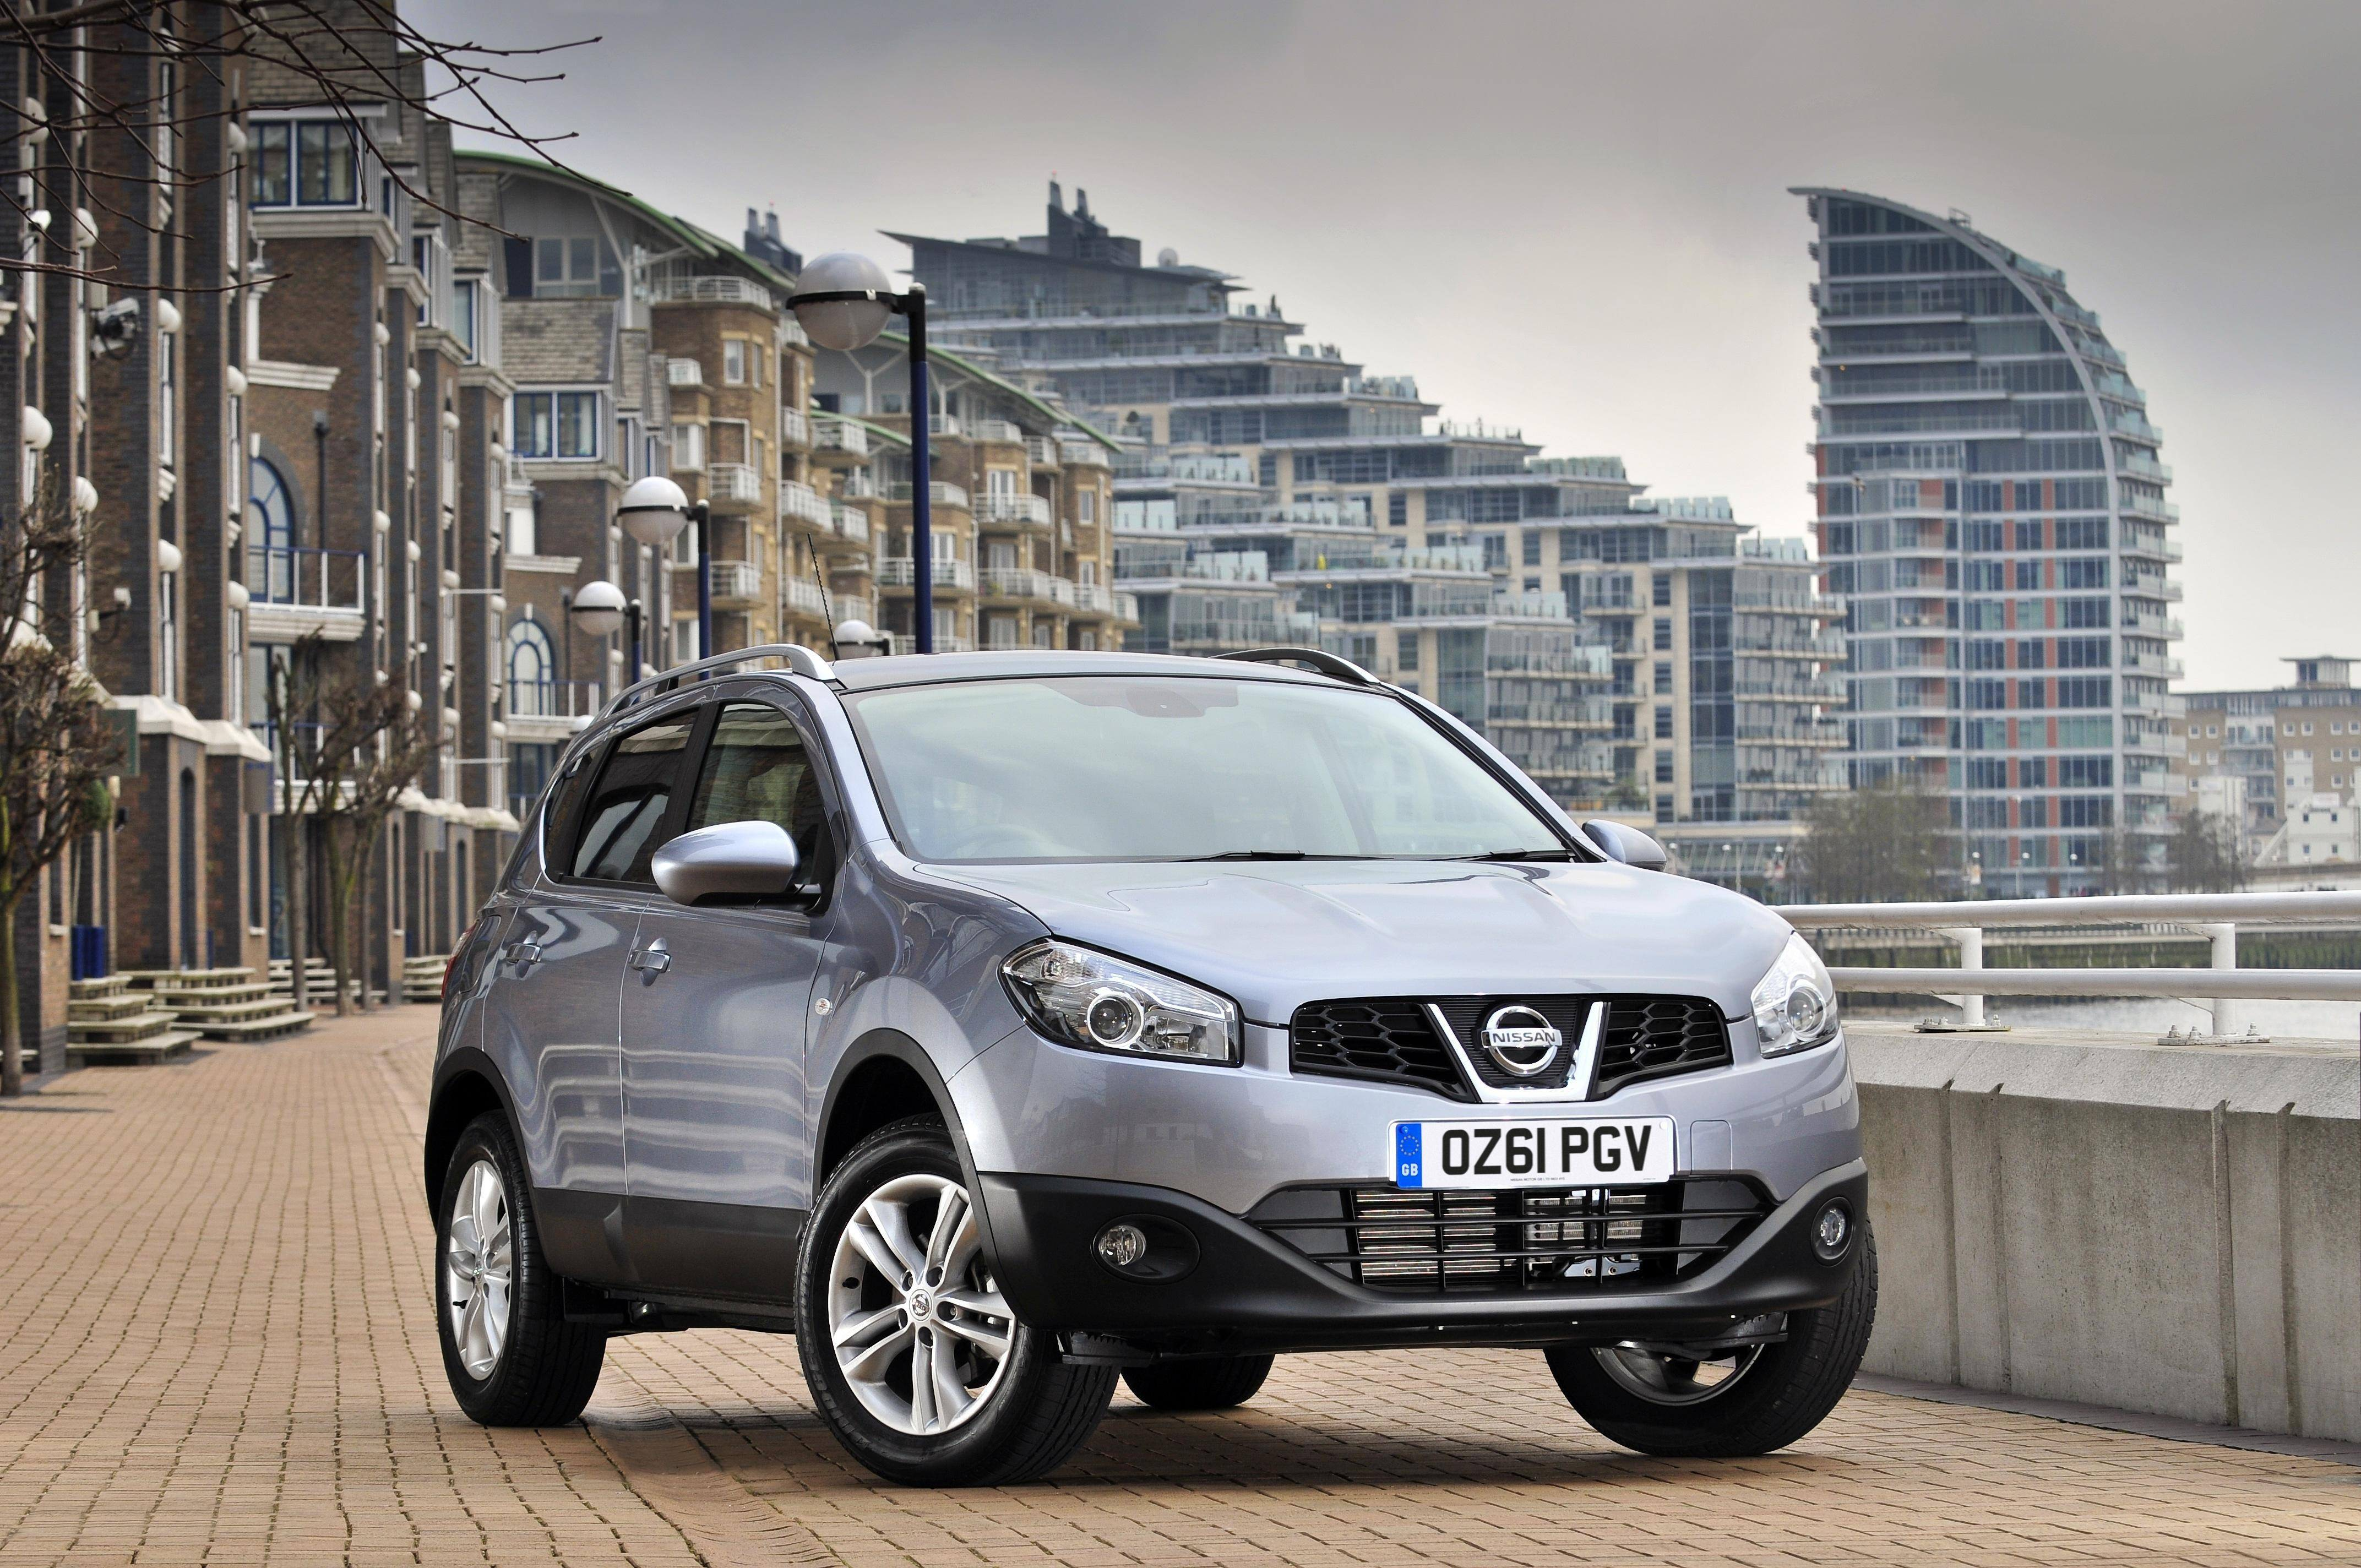 Used buying guide: Nissan Qashqai